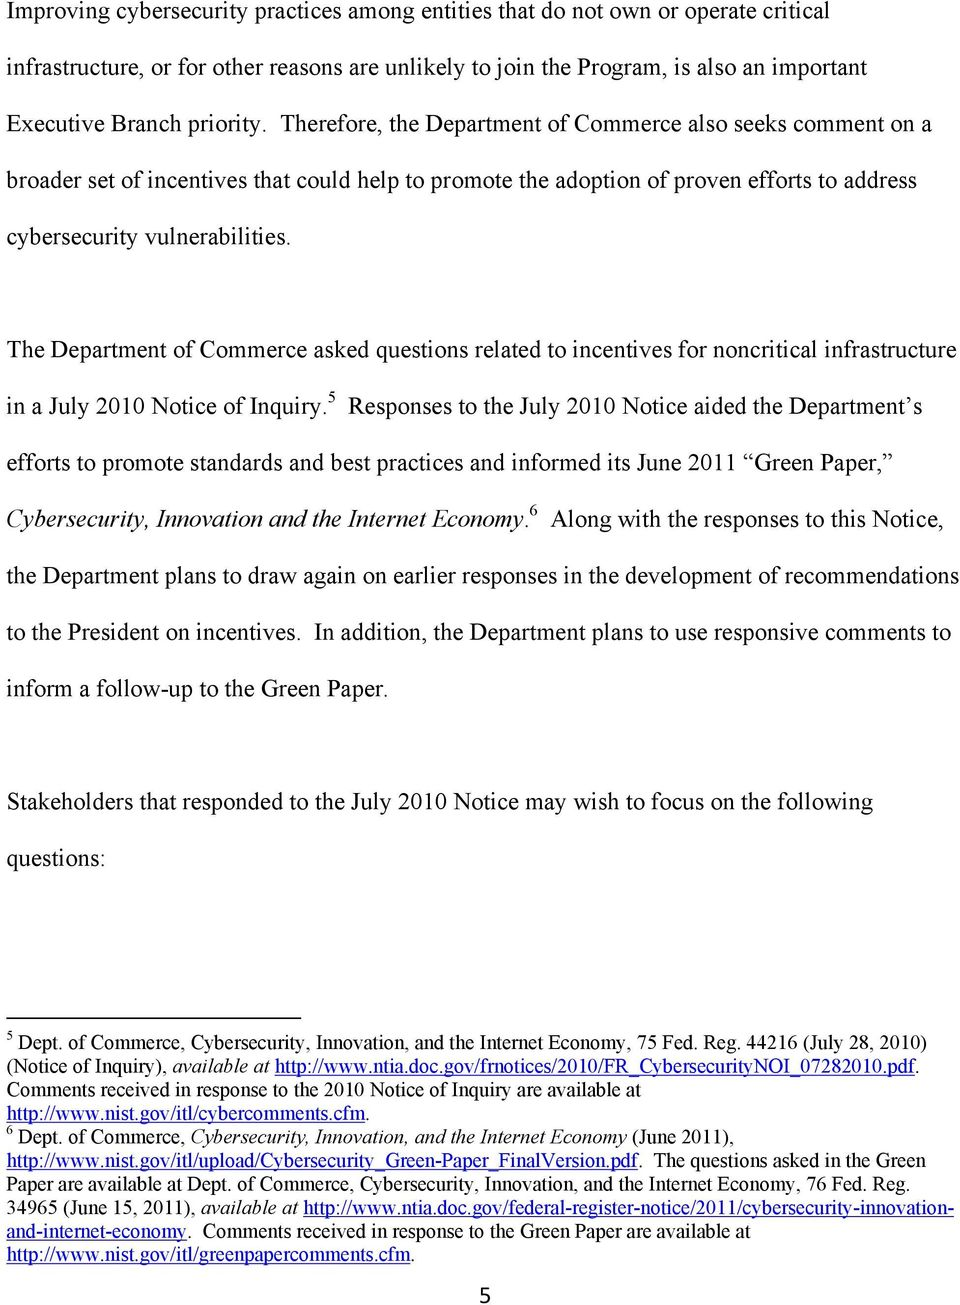 The Department of Commerce asked questions related to incentives for noncritical infrastructure in a July 2010 Notice of Inquiry.